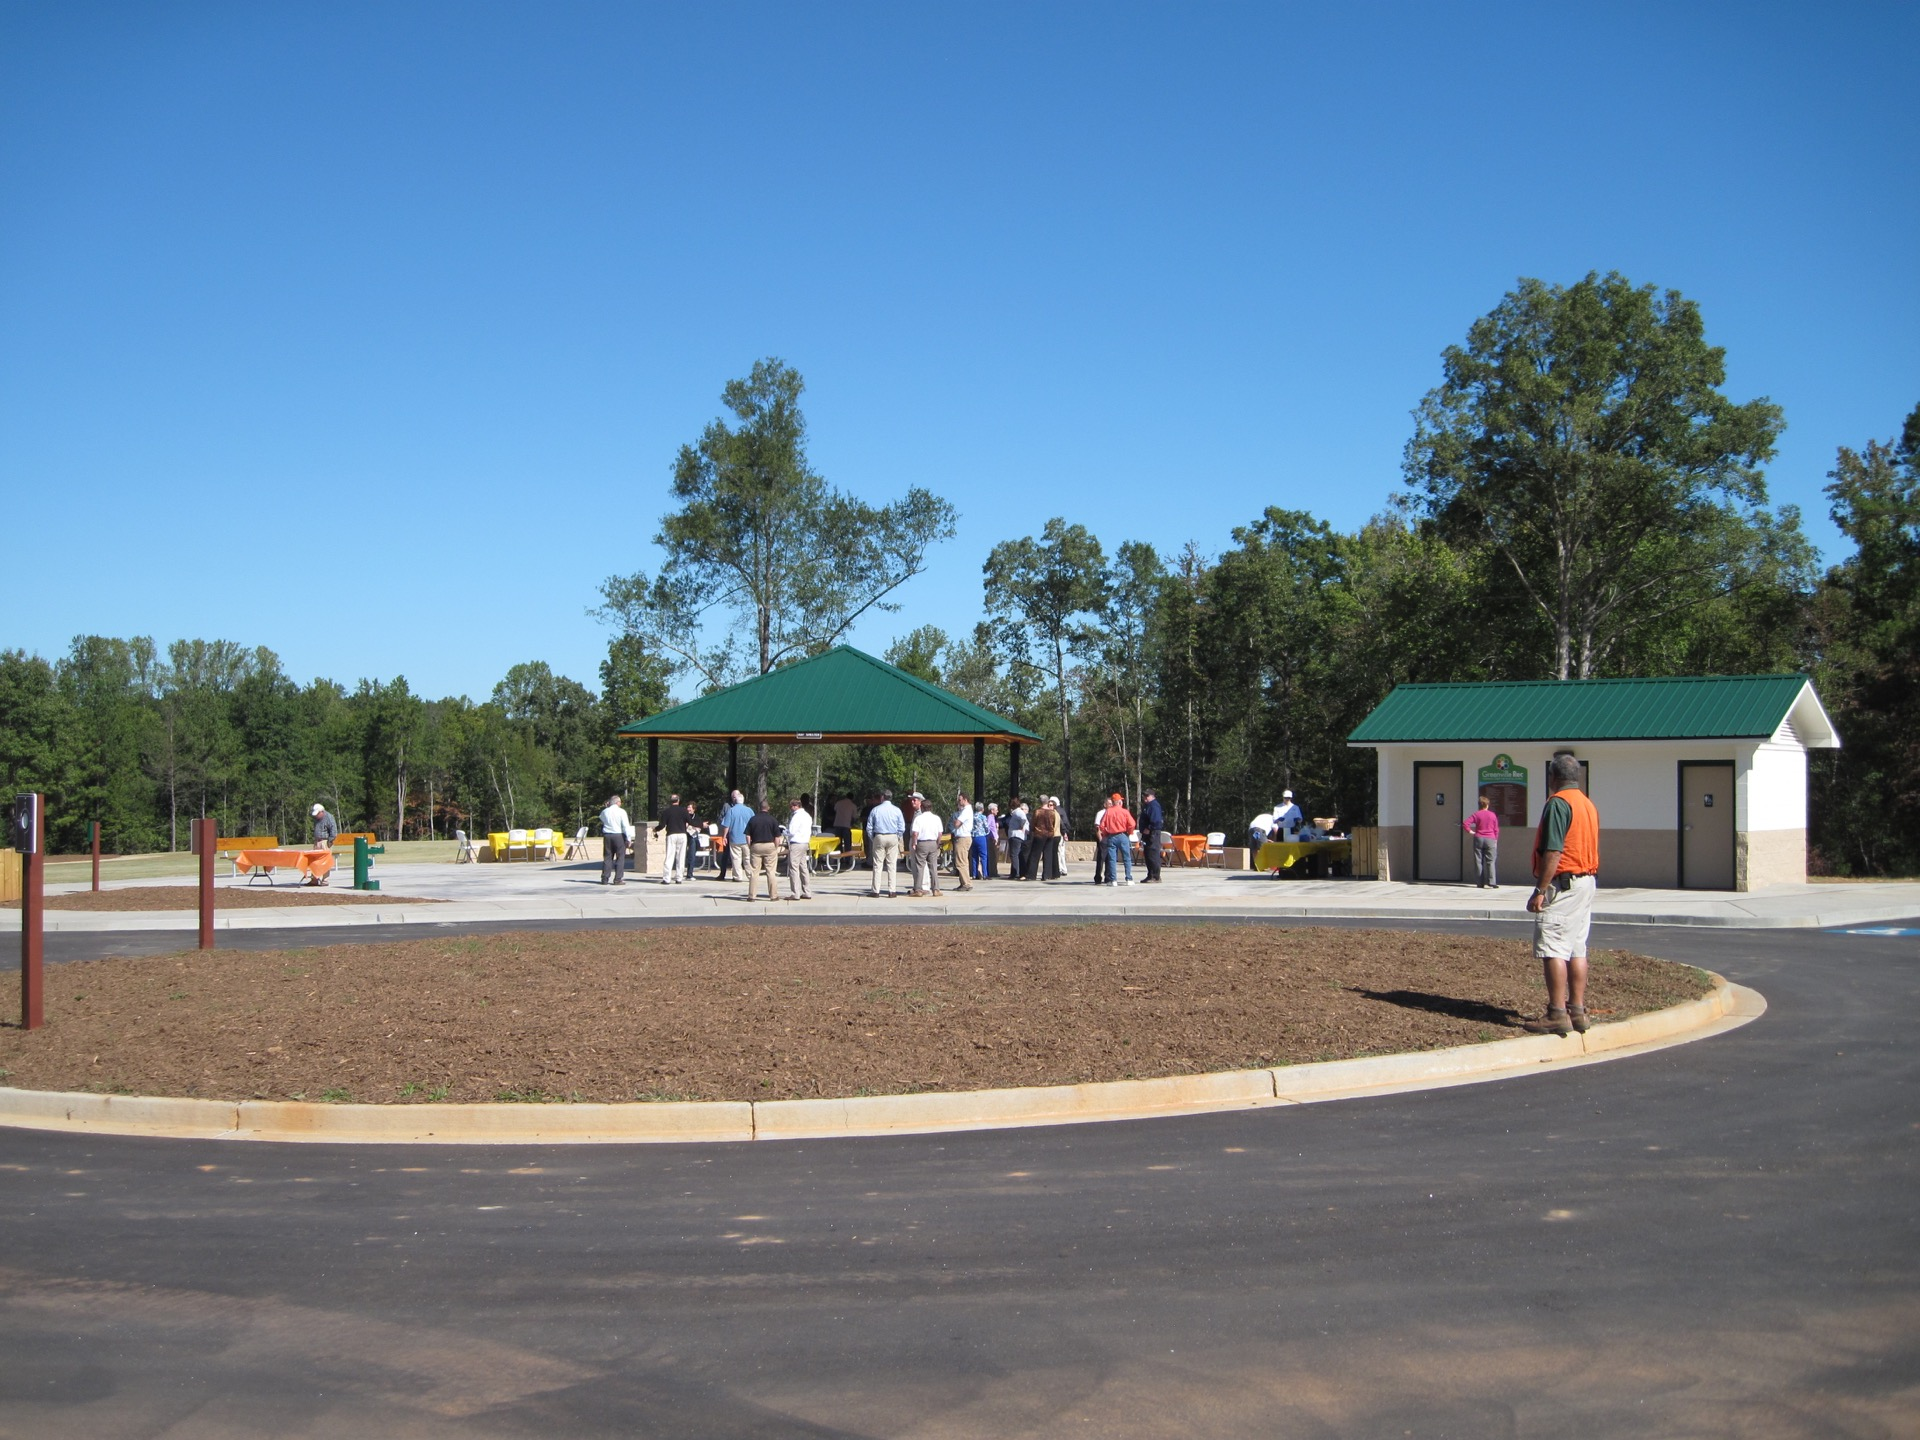 people congregating under a shelter